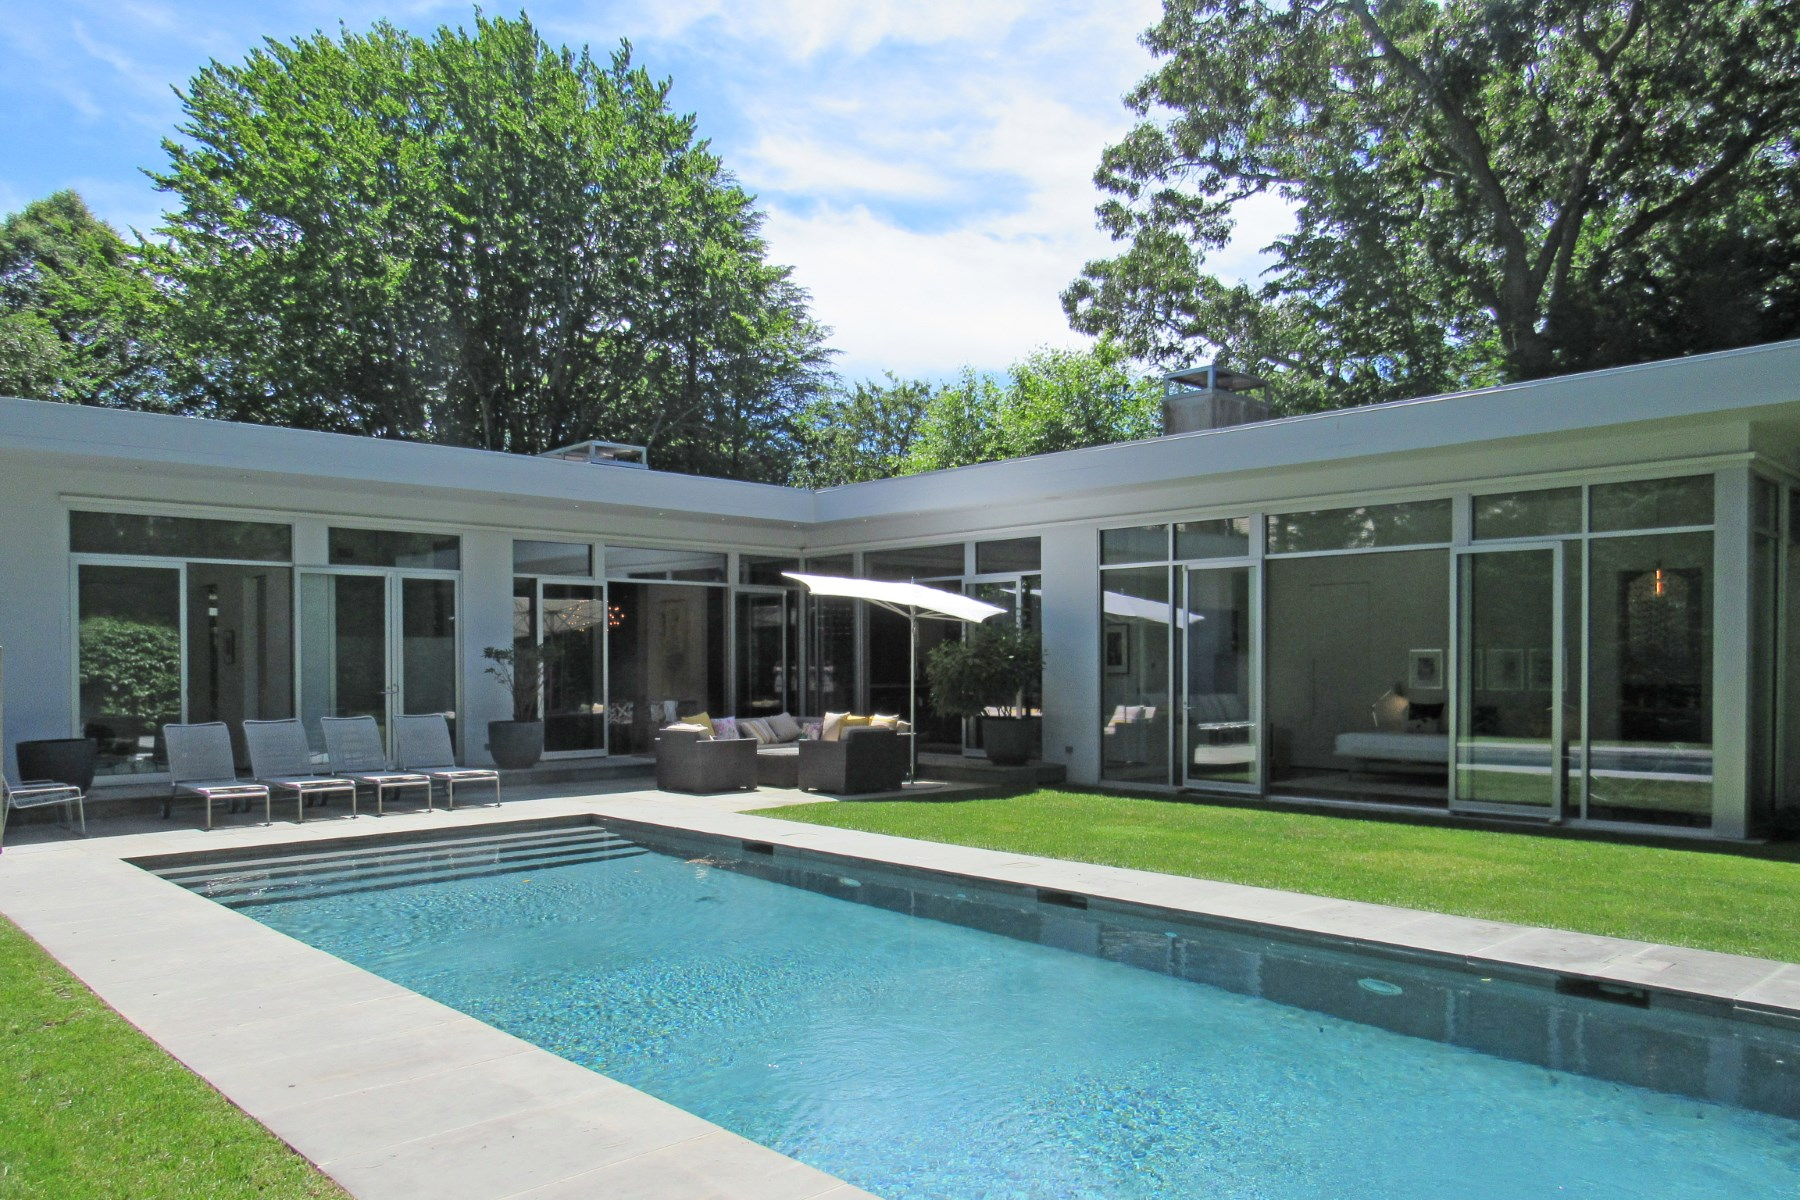 Single Family Home for Sale at Exquisitely Designed Modern 31 Palma Terrace, East Hampton Village, East Hampton, New York, 11937 United States